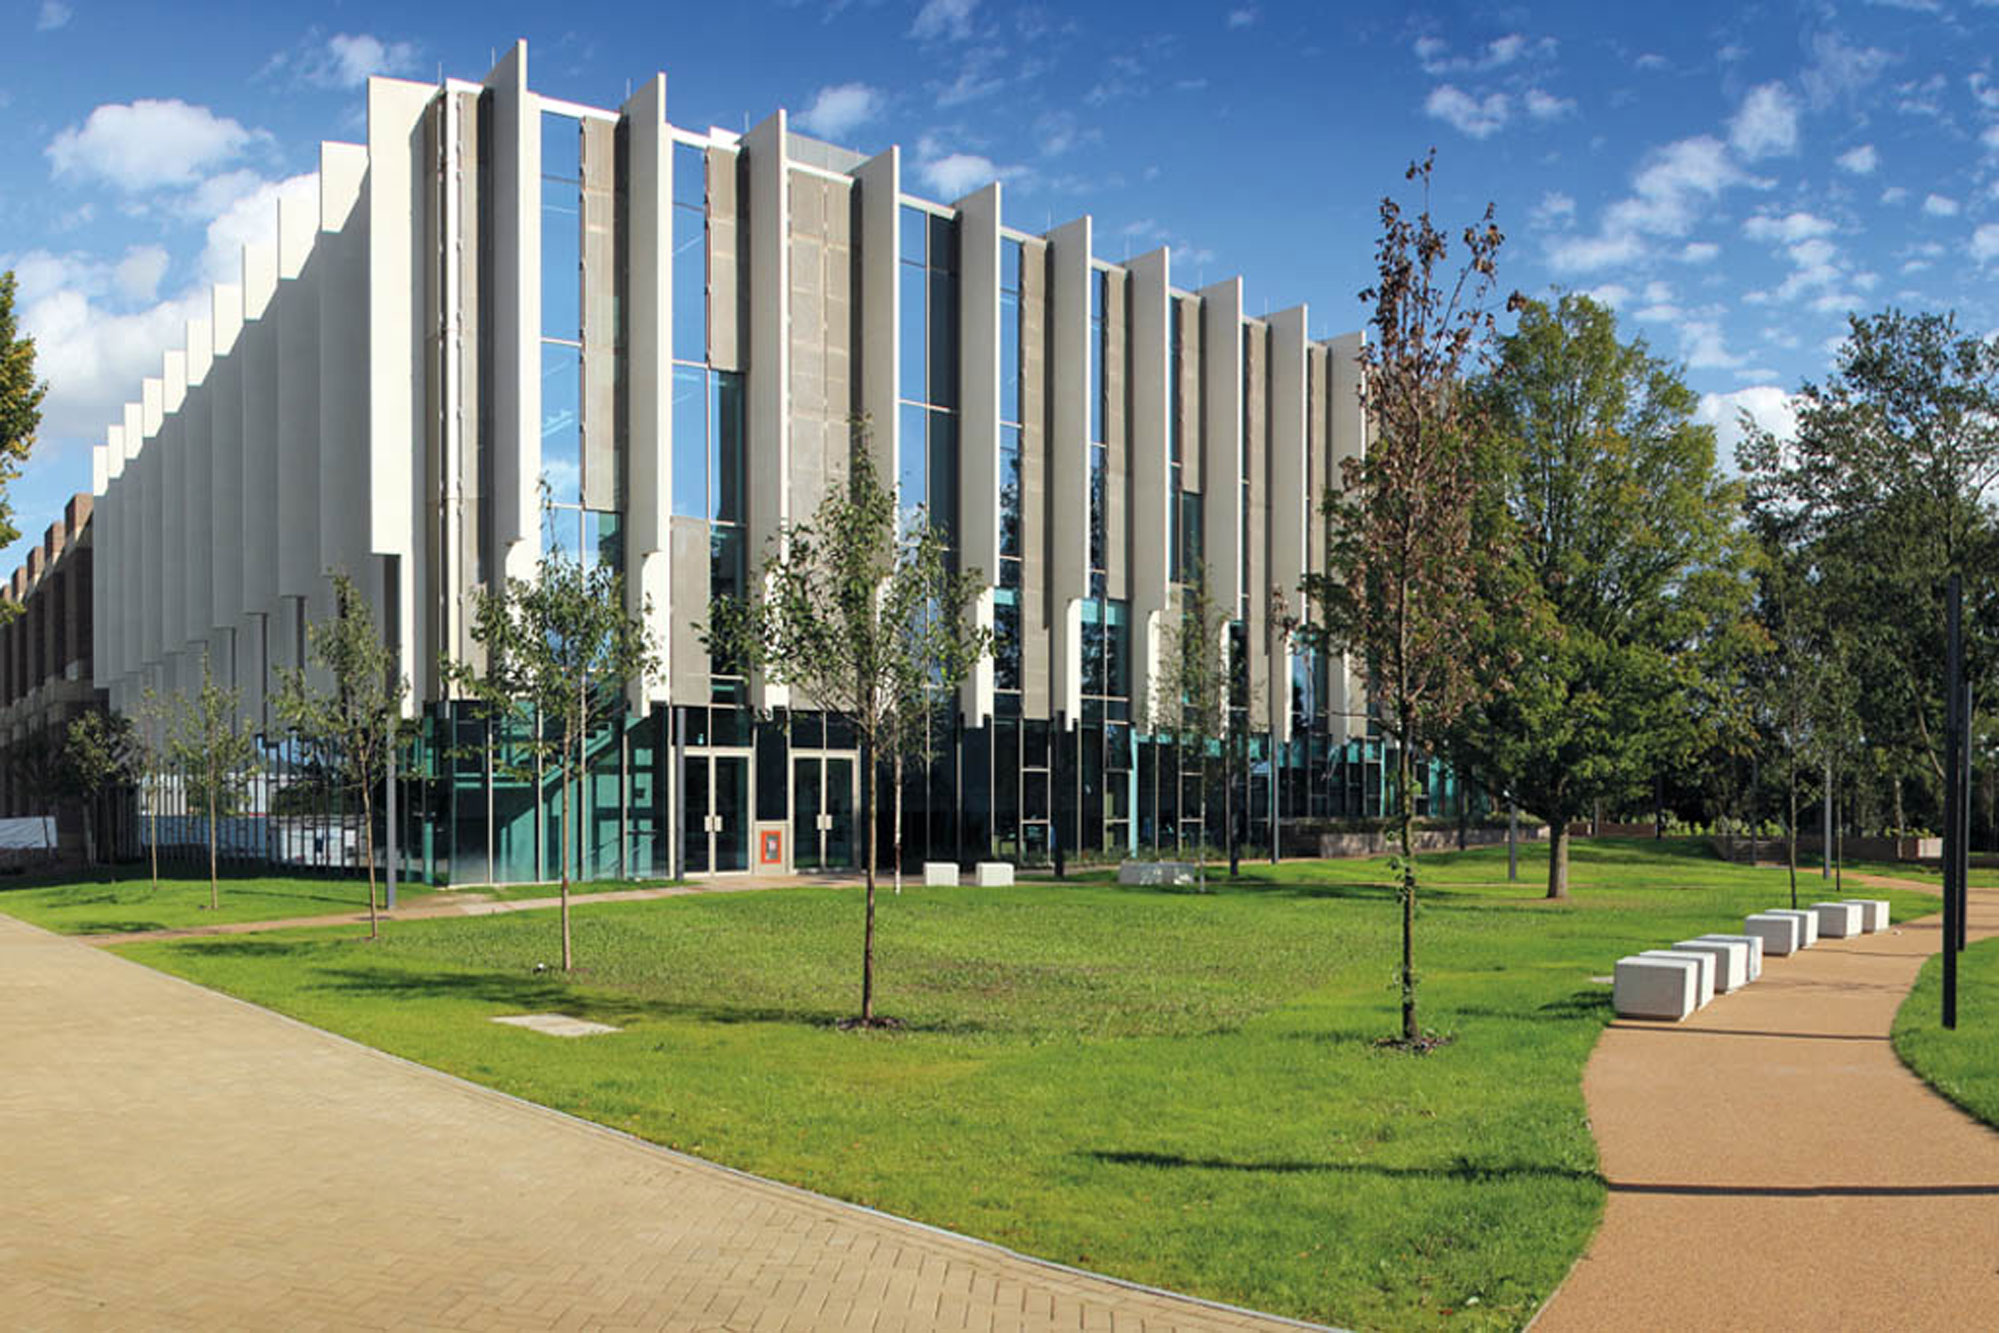 View of the west wing of Templeman Library, University of Kent, in sunlight